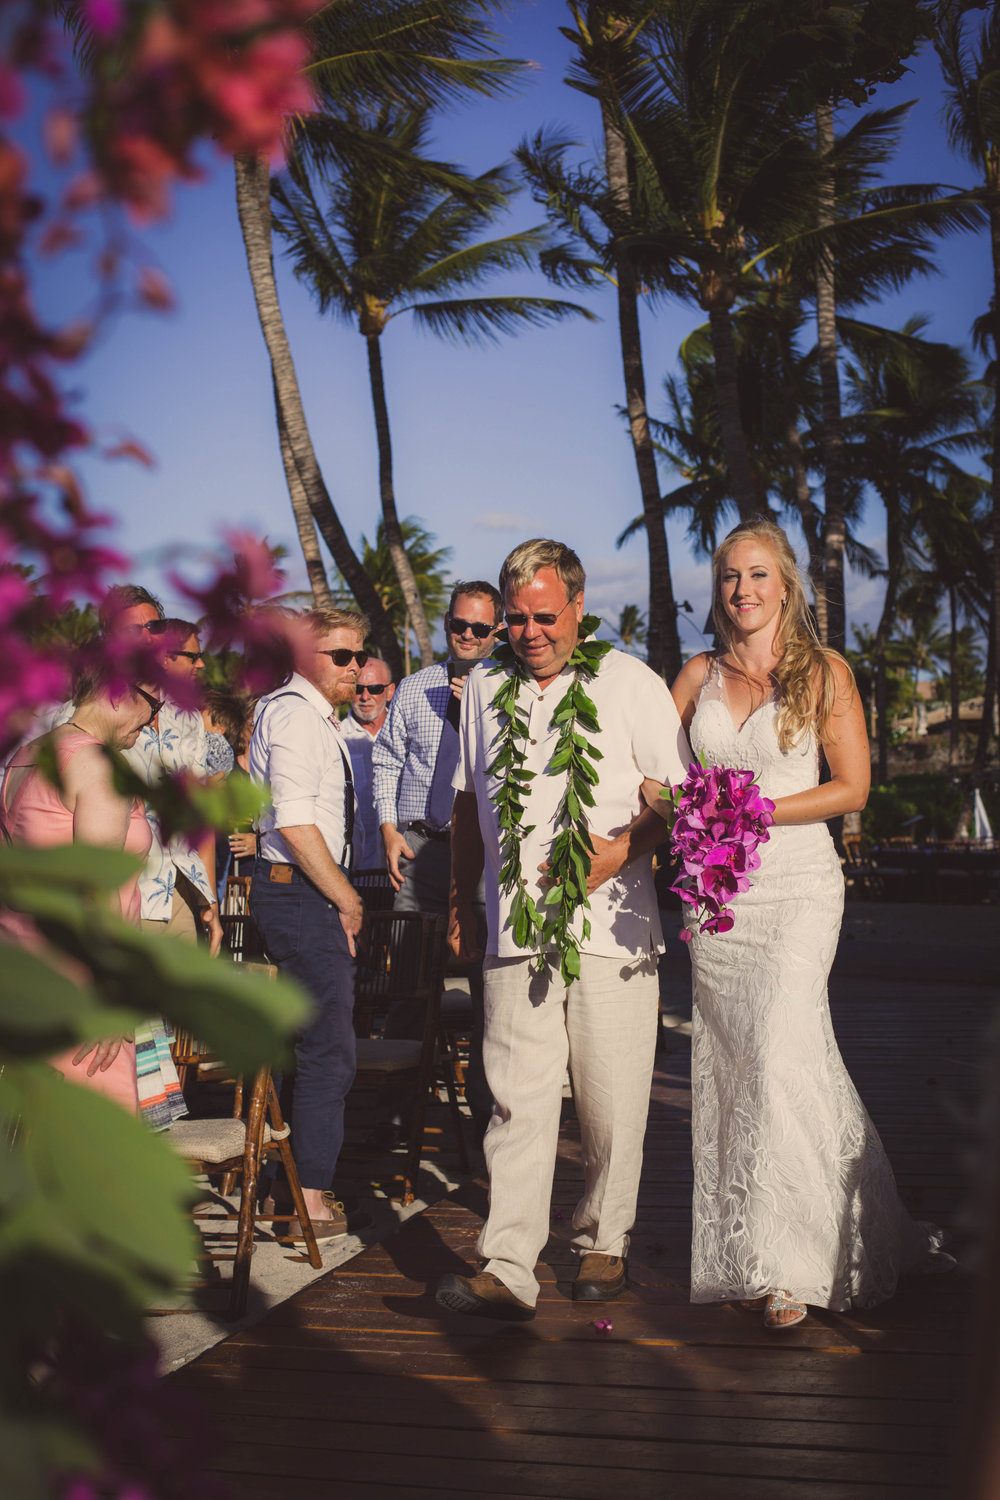 big island hawaii fairmont orchid beach wedding © kelilina photography 20170812173536-1.jpg